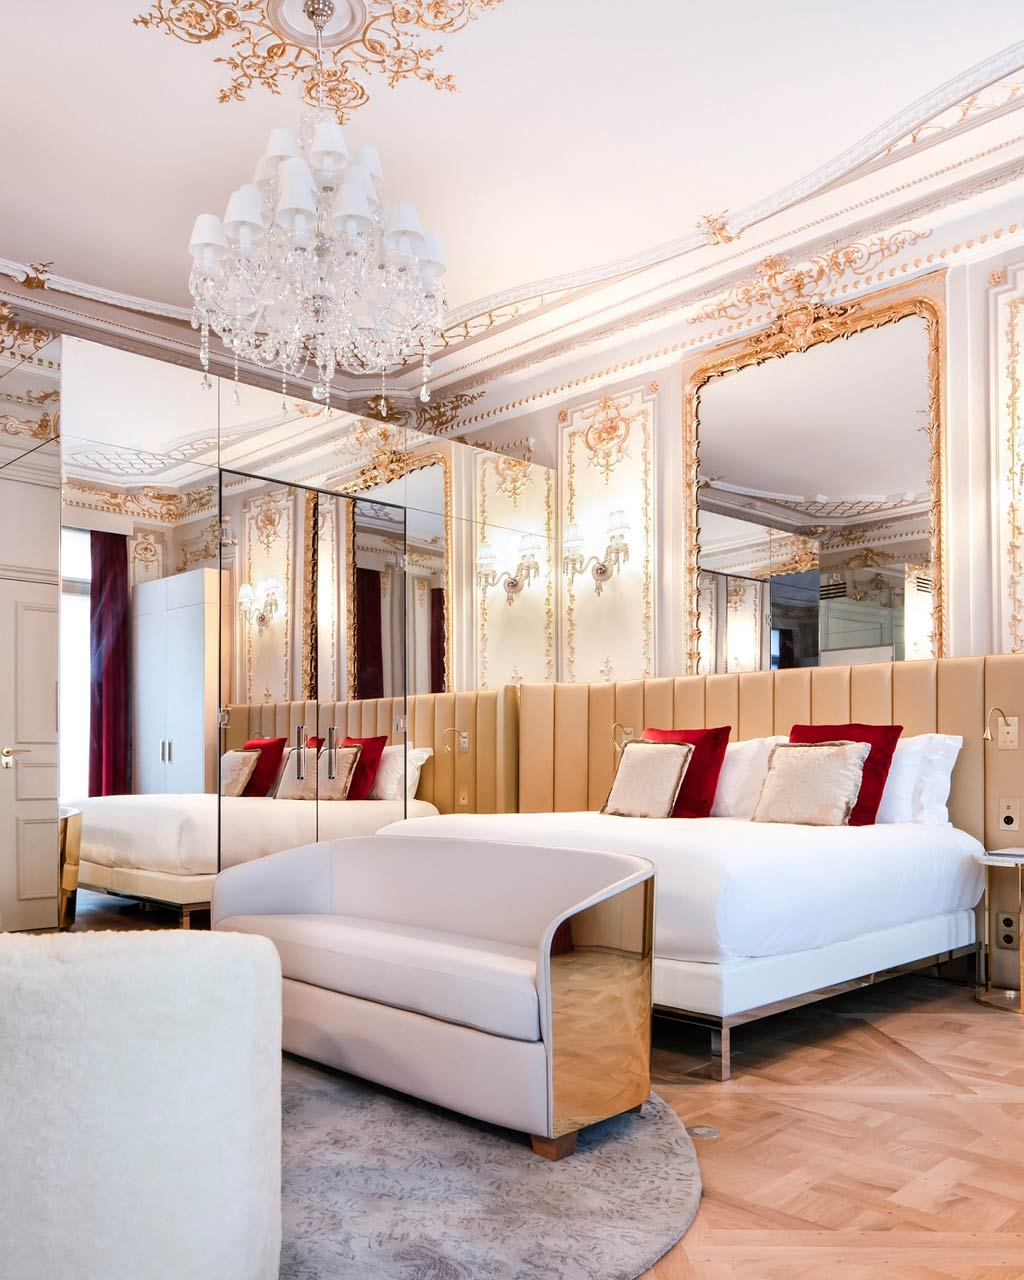 Suite at Hotel Bowmann, Paris, France